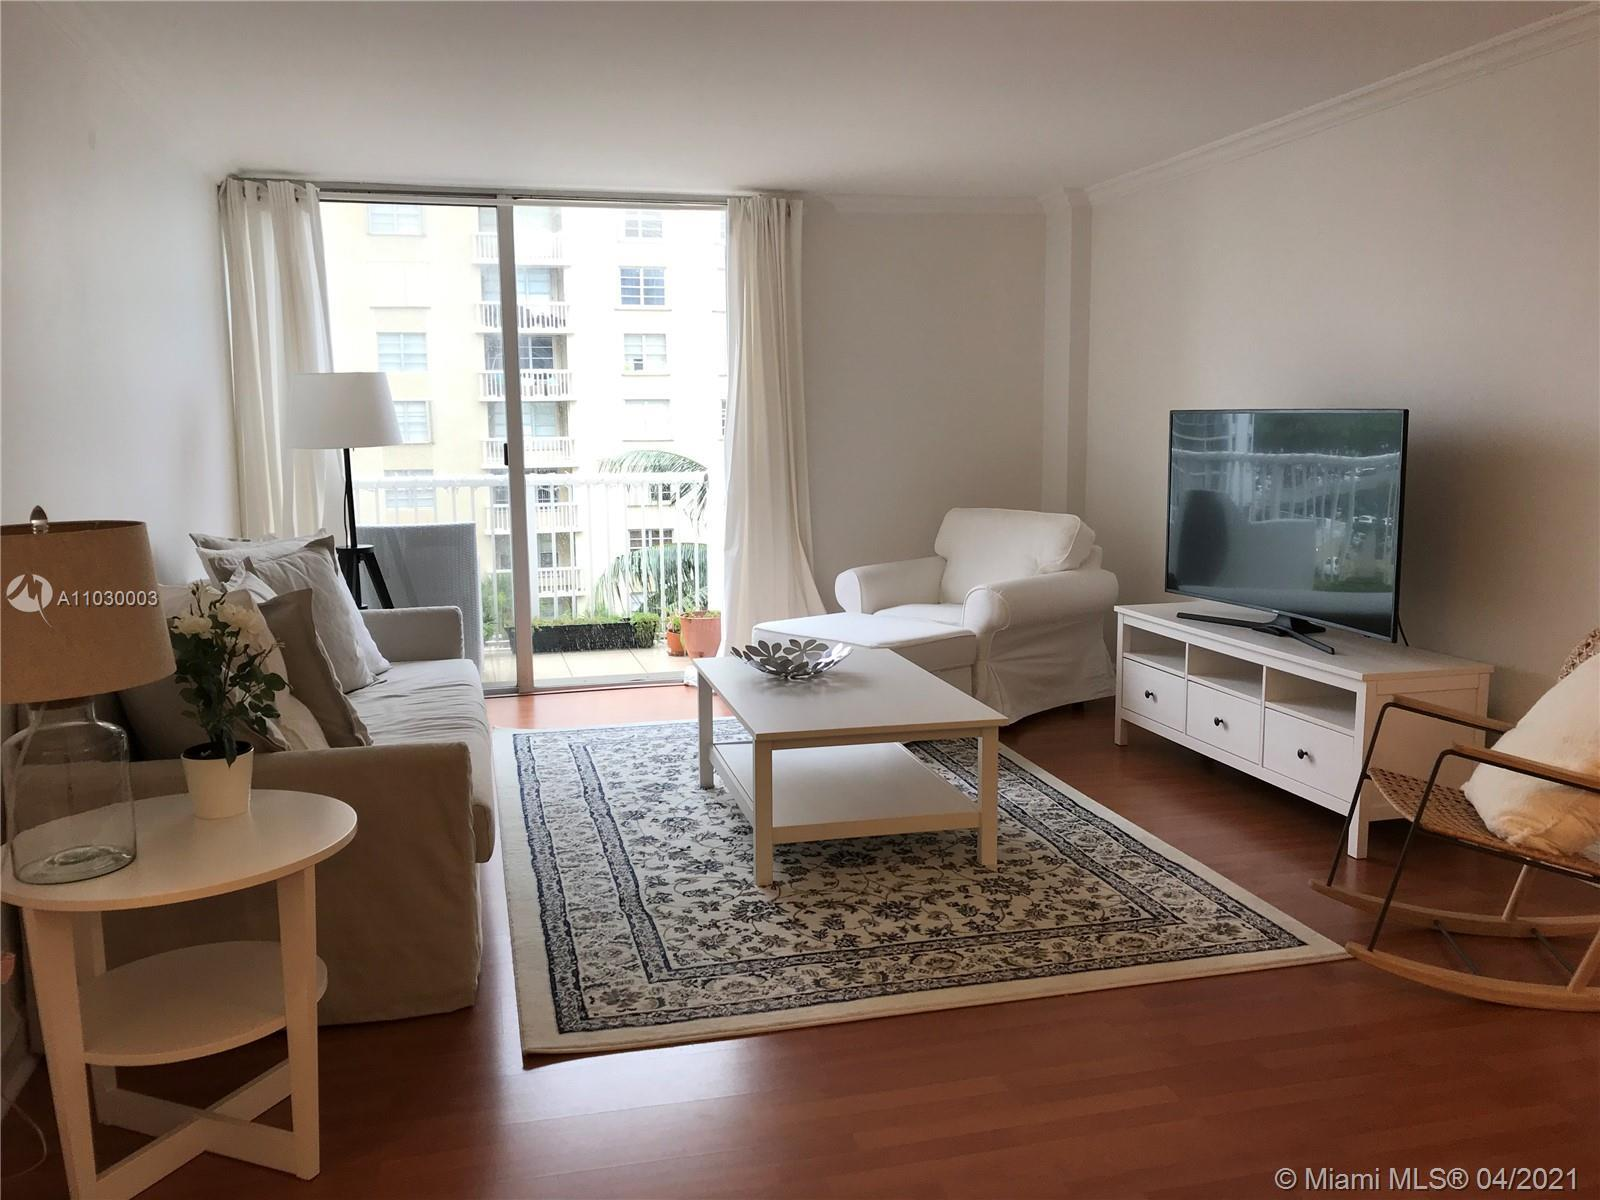 BEAUTIFULLY SPACIOUS REMODELED UNIT! READY TO MOVE IN! GREAT LOCATION! WOOD FLOORS! FURNISHED OPTION